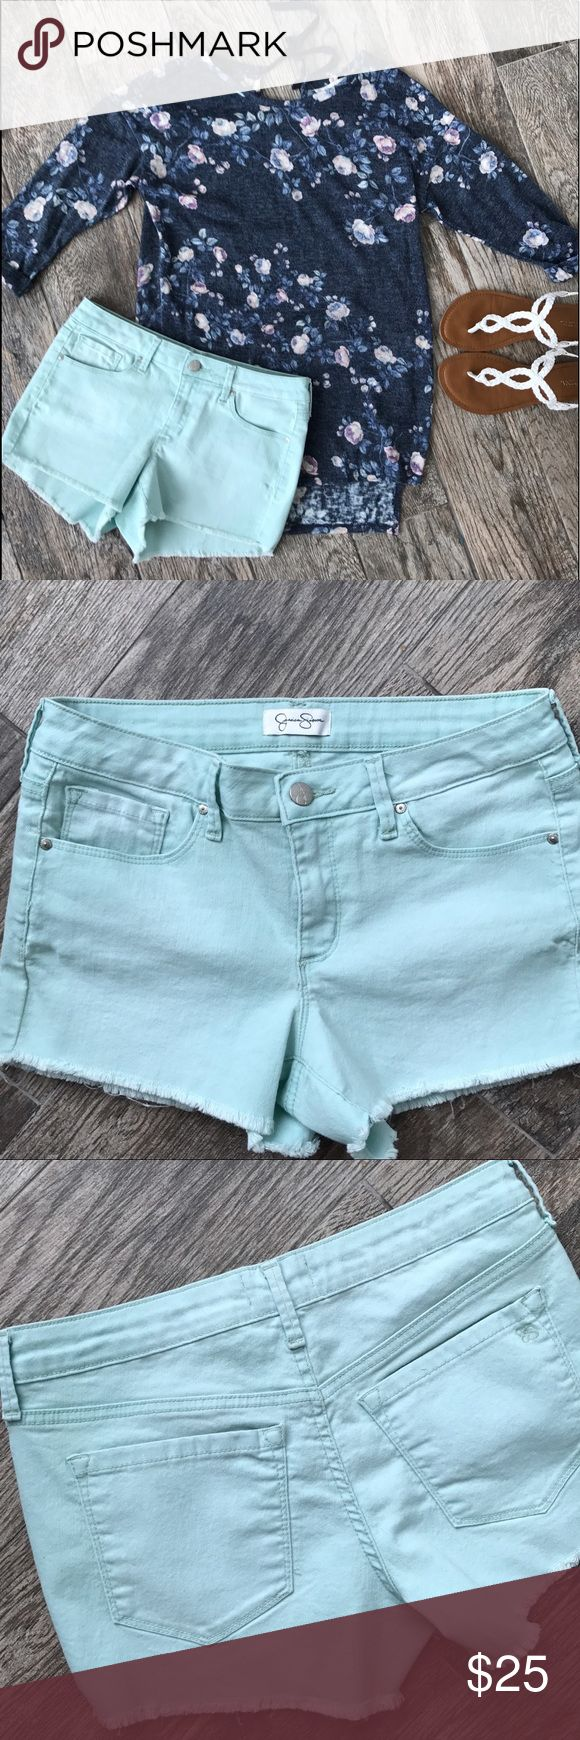 Jessica Simpson Light Blue Shorts Jessica Simpson Light Blue Shorts - Size 27 (3/4) Excellent condition. ***LC Lauren Conrad shirt is also listed in my closet ☺️ Jessica Simpson Shorts Jean Shorts